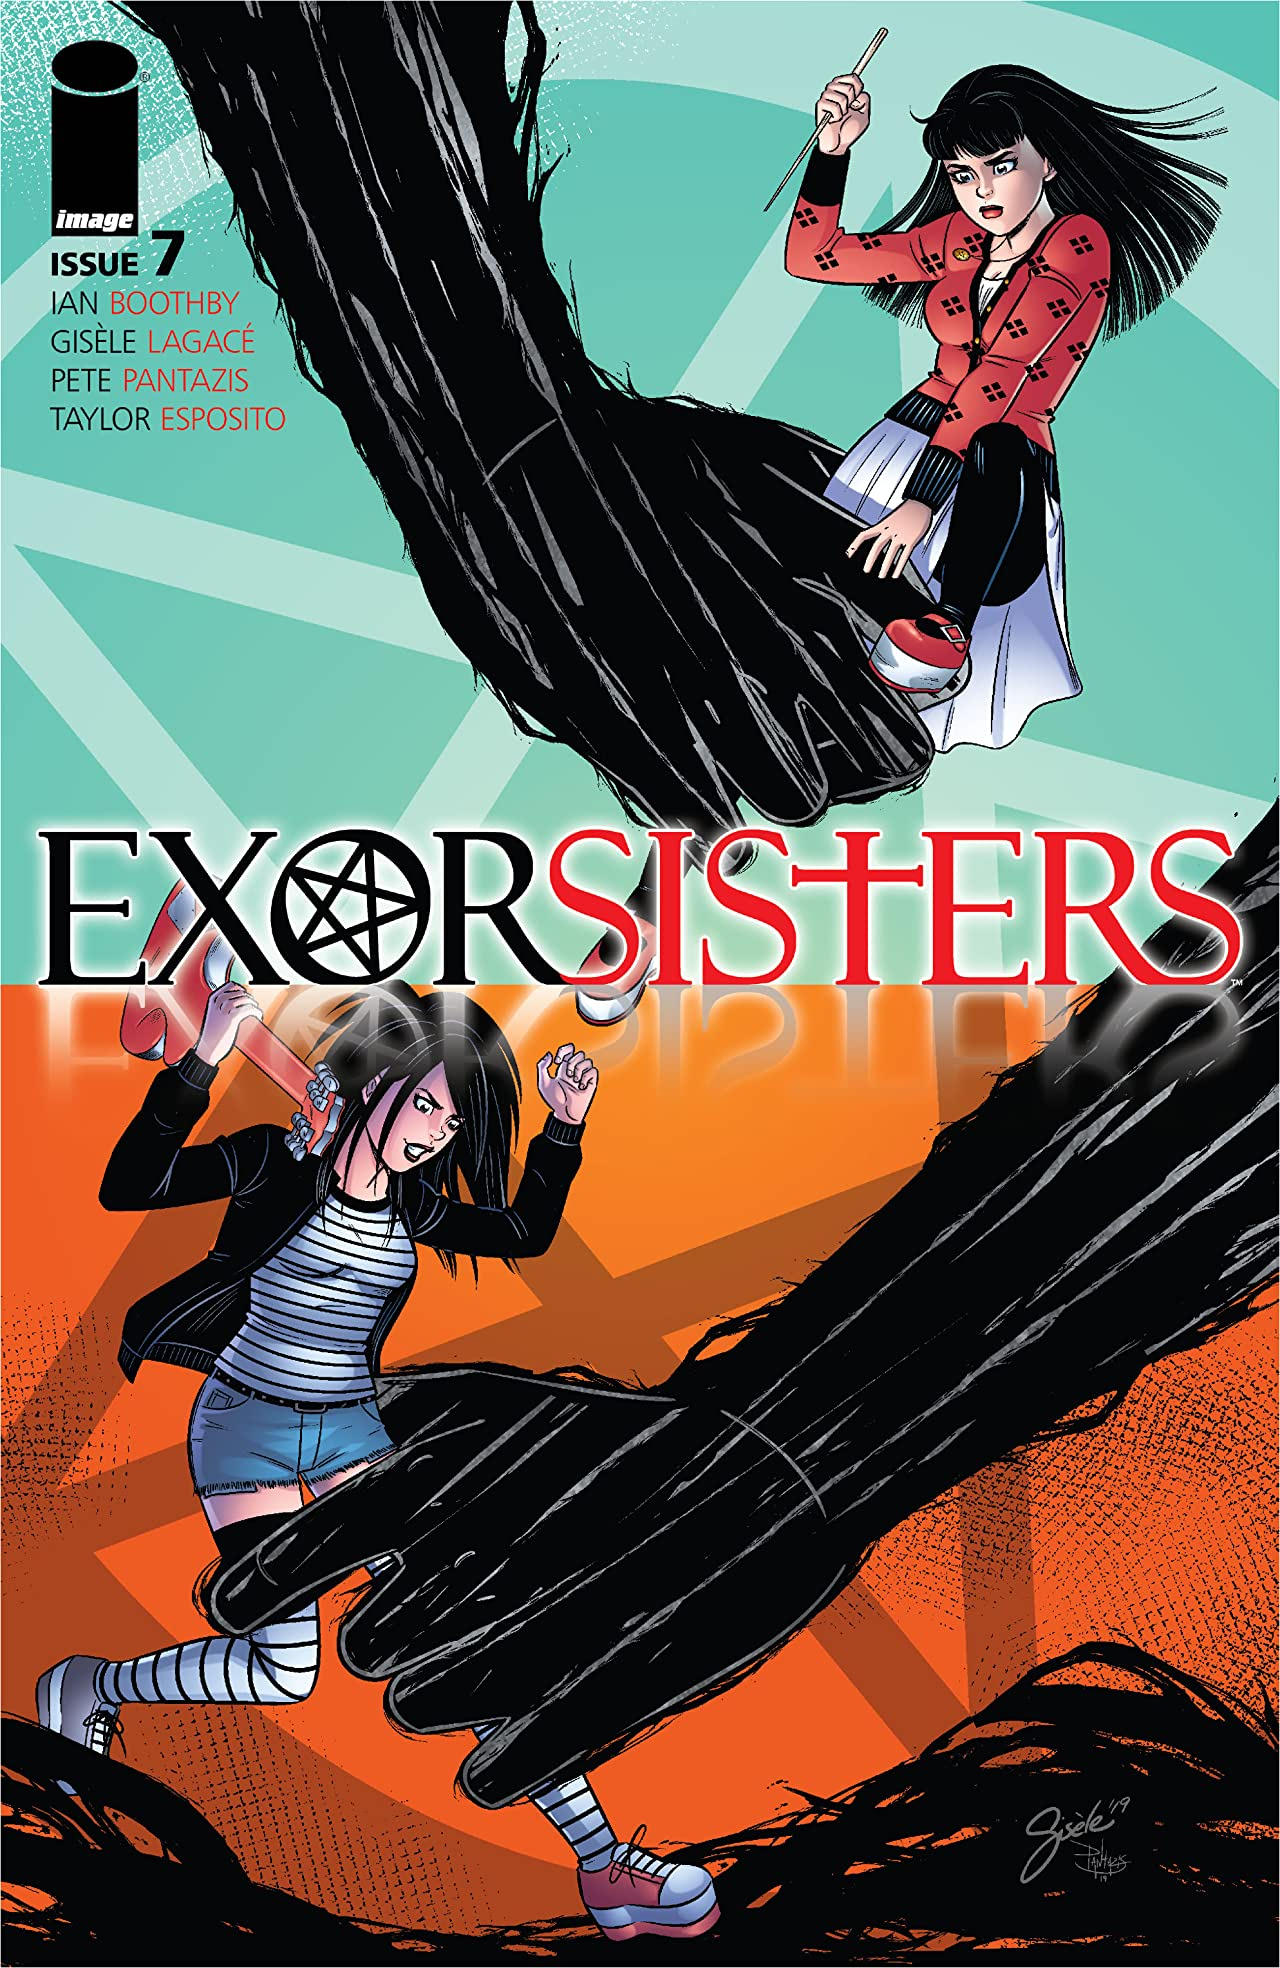 Exorsisters #7